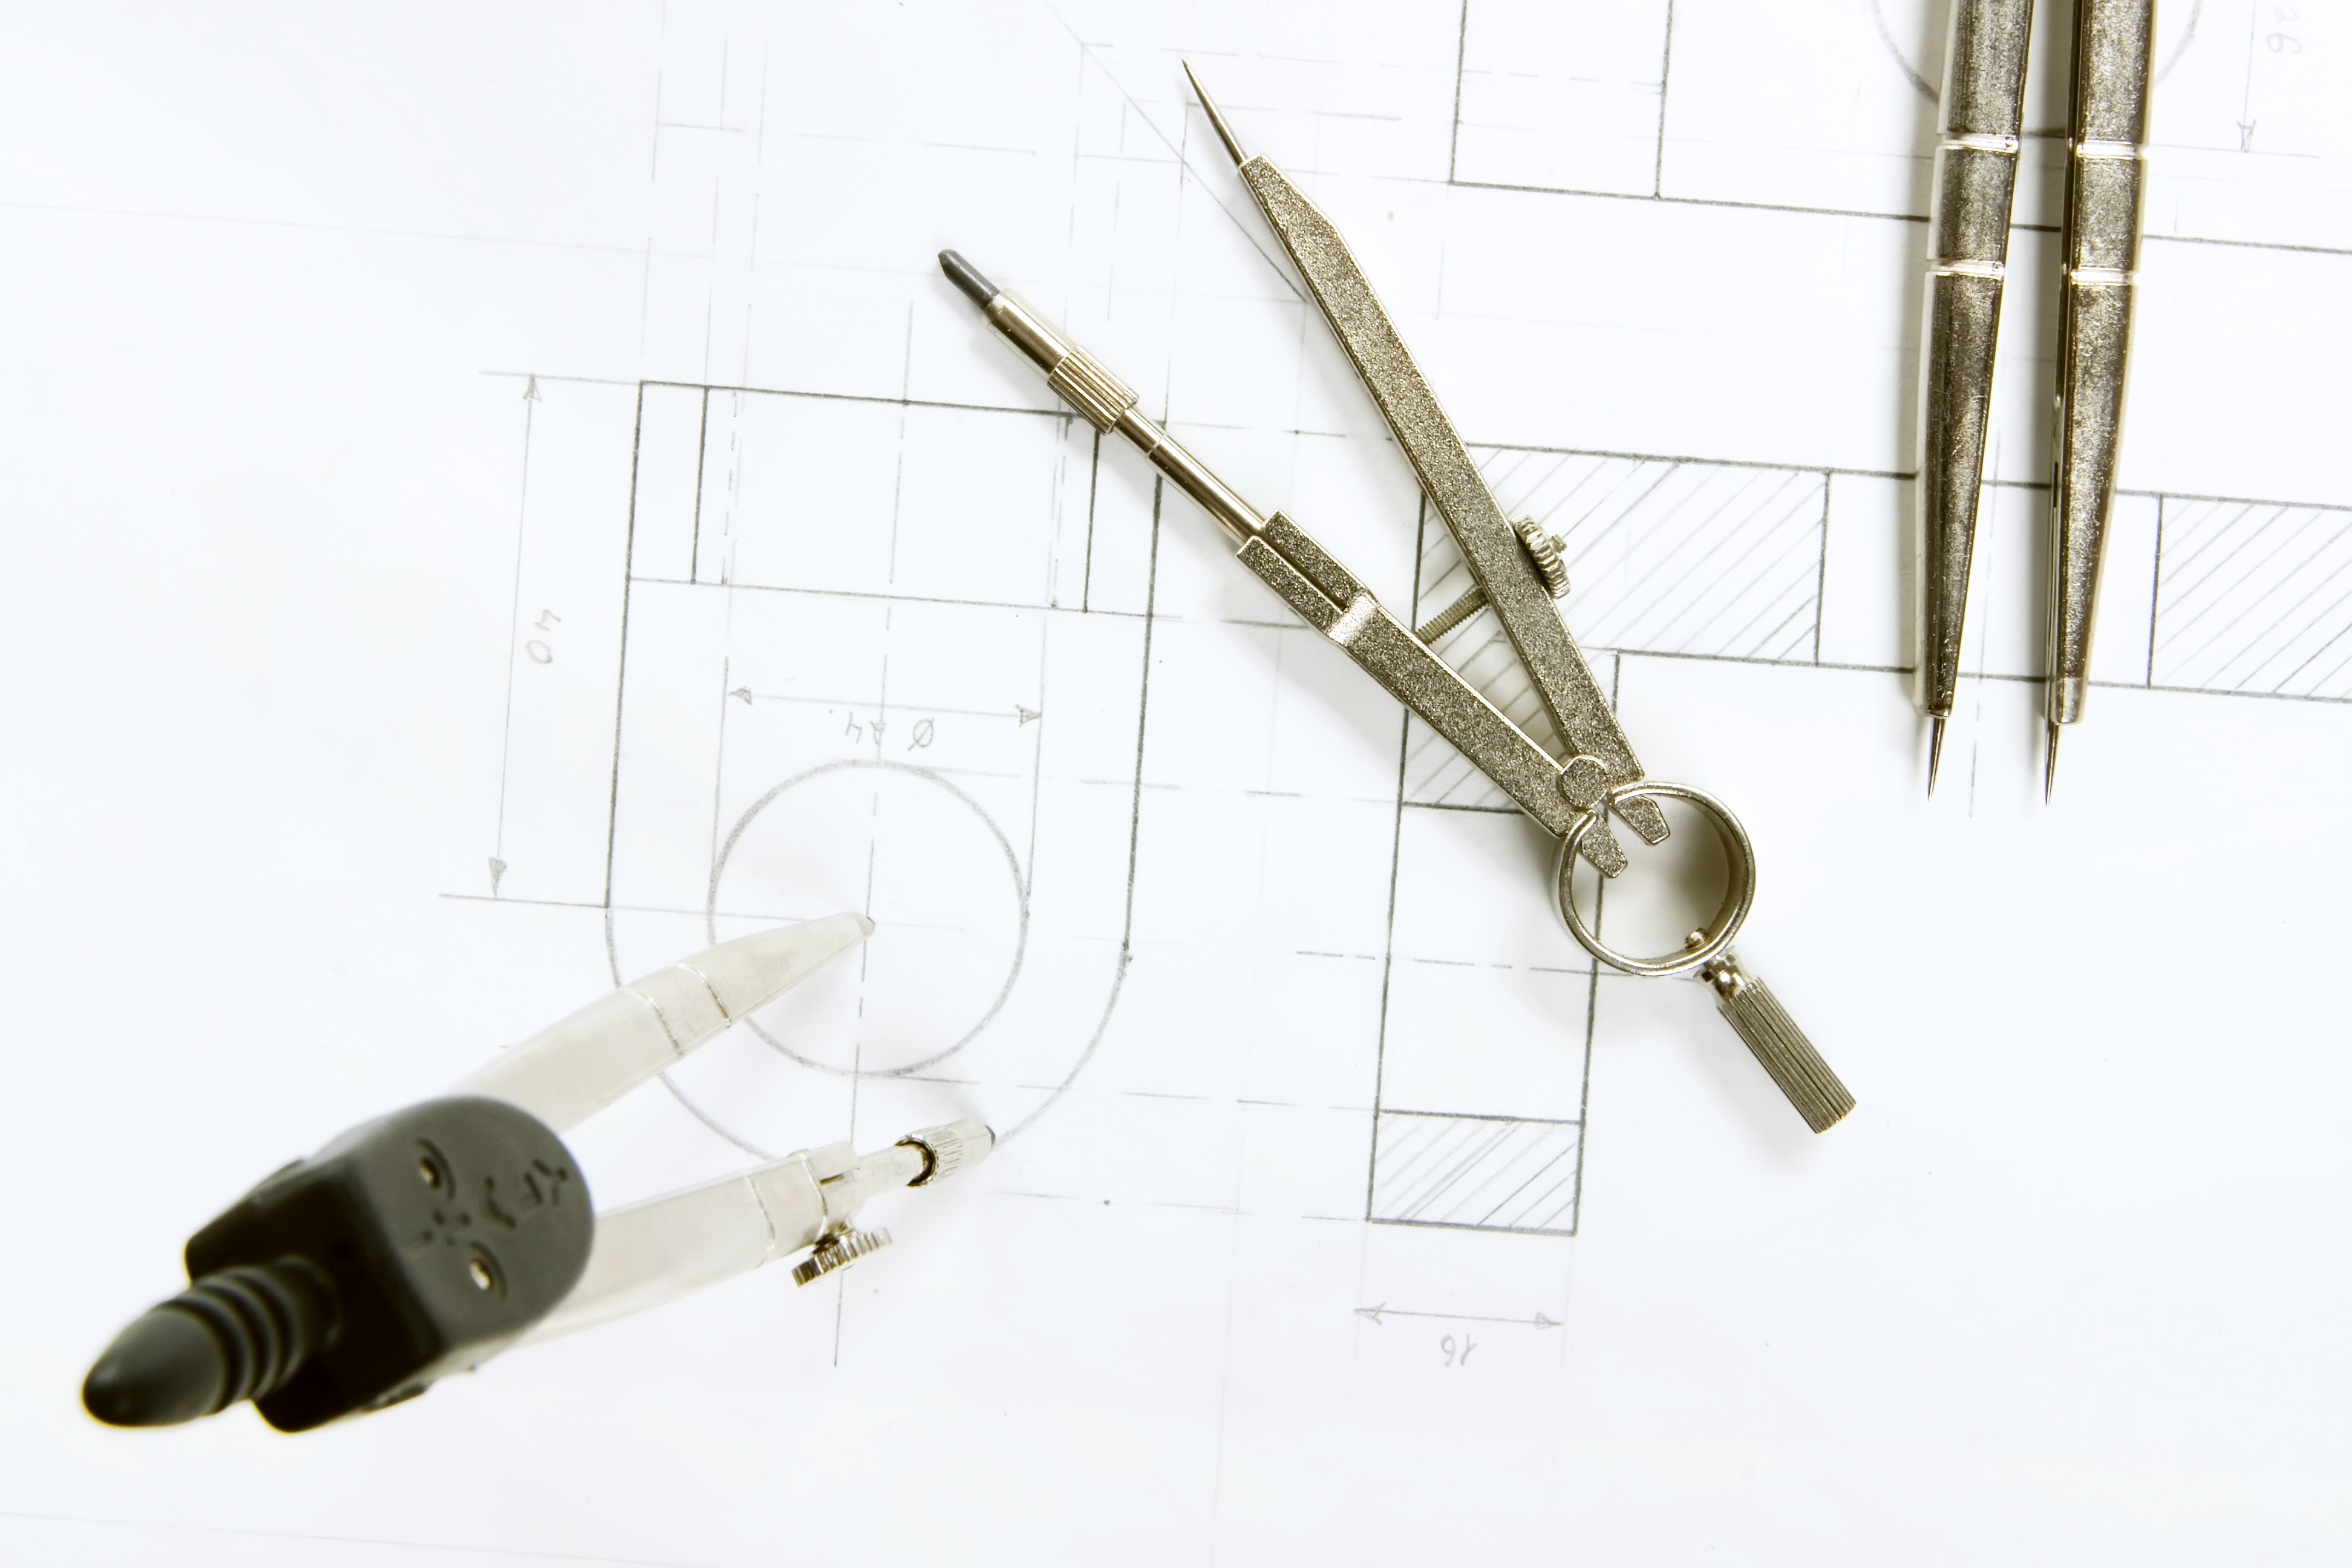 Drawing Compasses, Paper, White, Table, Sketch, HQ Photo